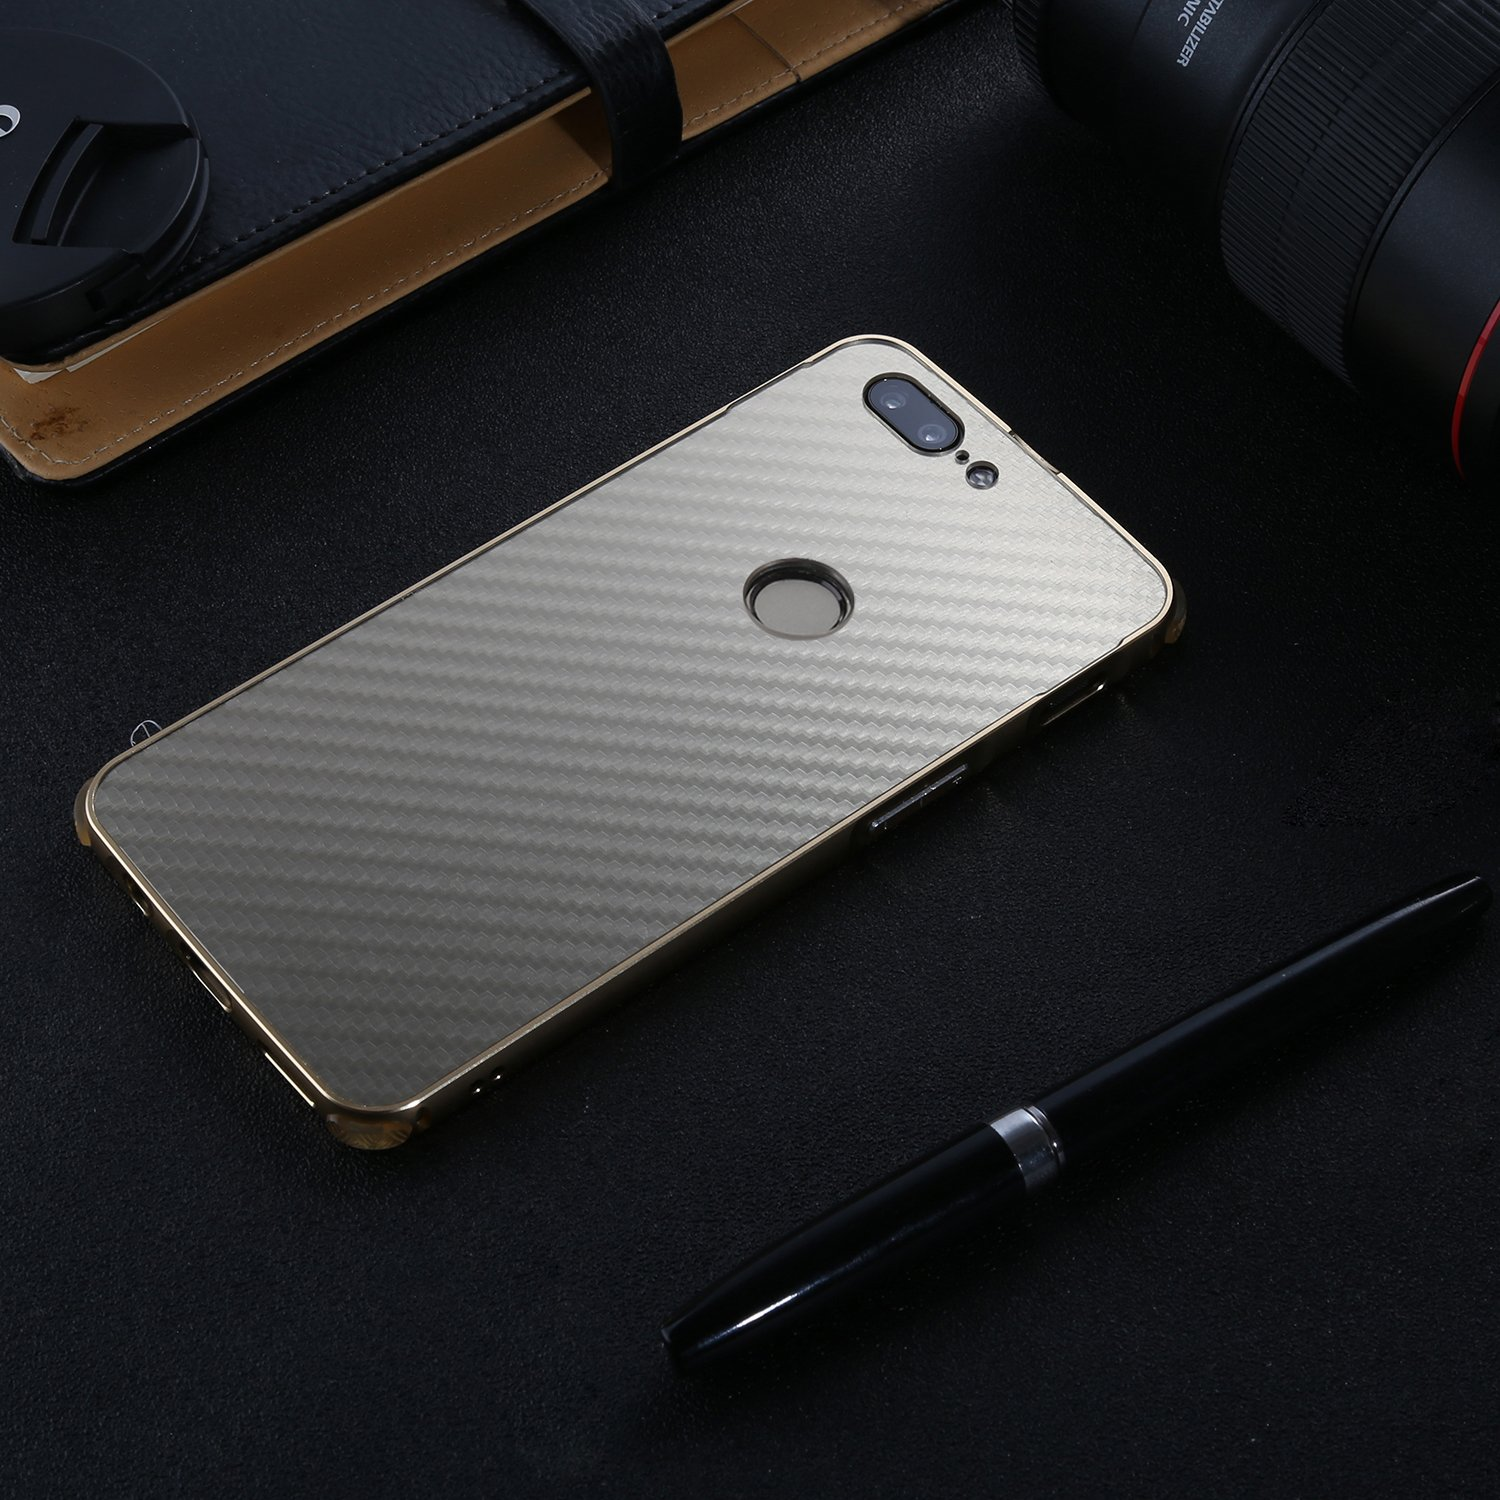 Oneplus 5T Case,DAMONDY Luxury Carbon Fiber Design Ultra thin Imitation Metal Brushed Premium Aluminum Shockproof Protective Bumper Hard Back Case Cover for OnePlus 5T (2017)-Gold by DAMONDY (Image #2)